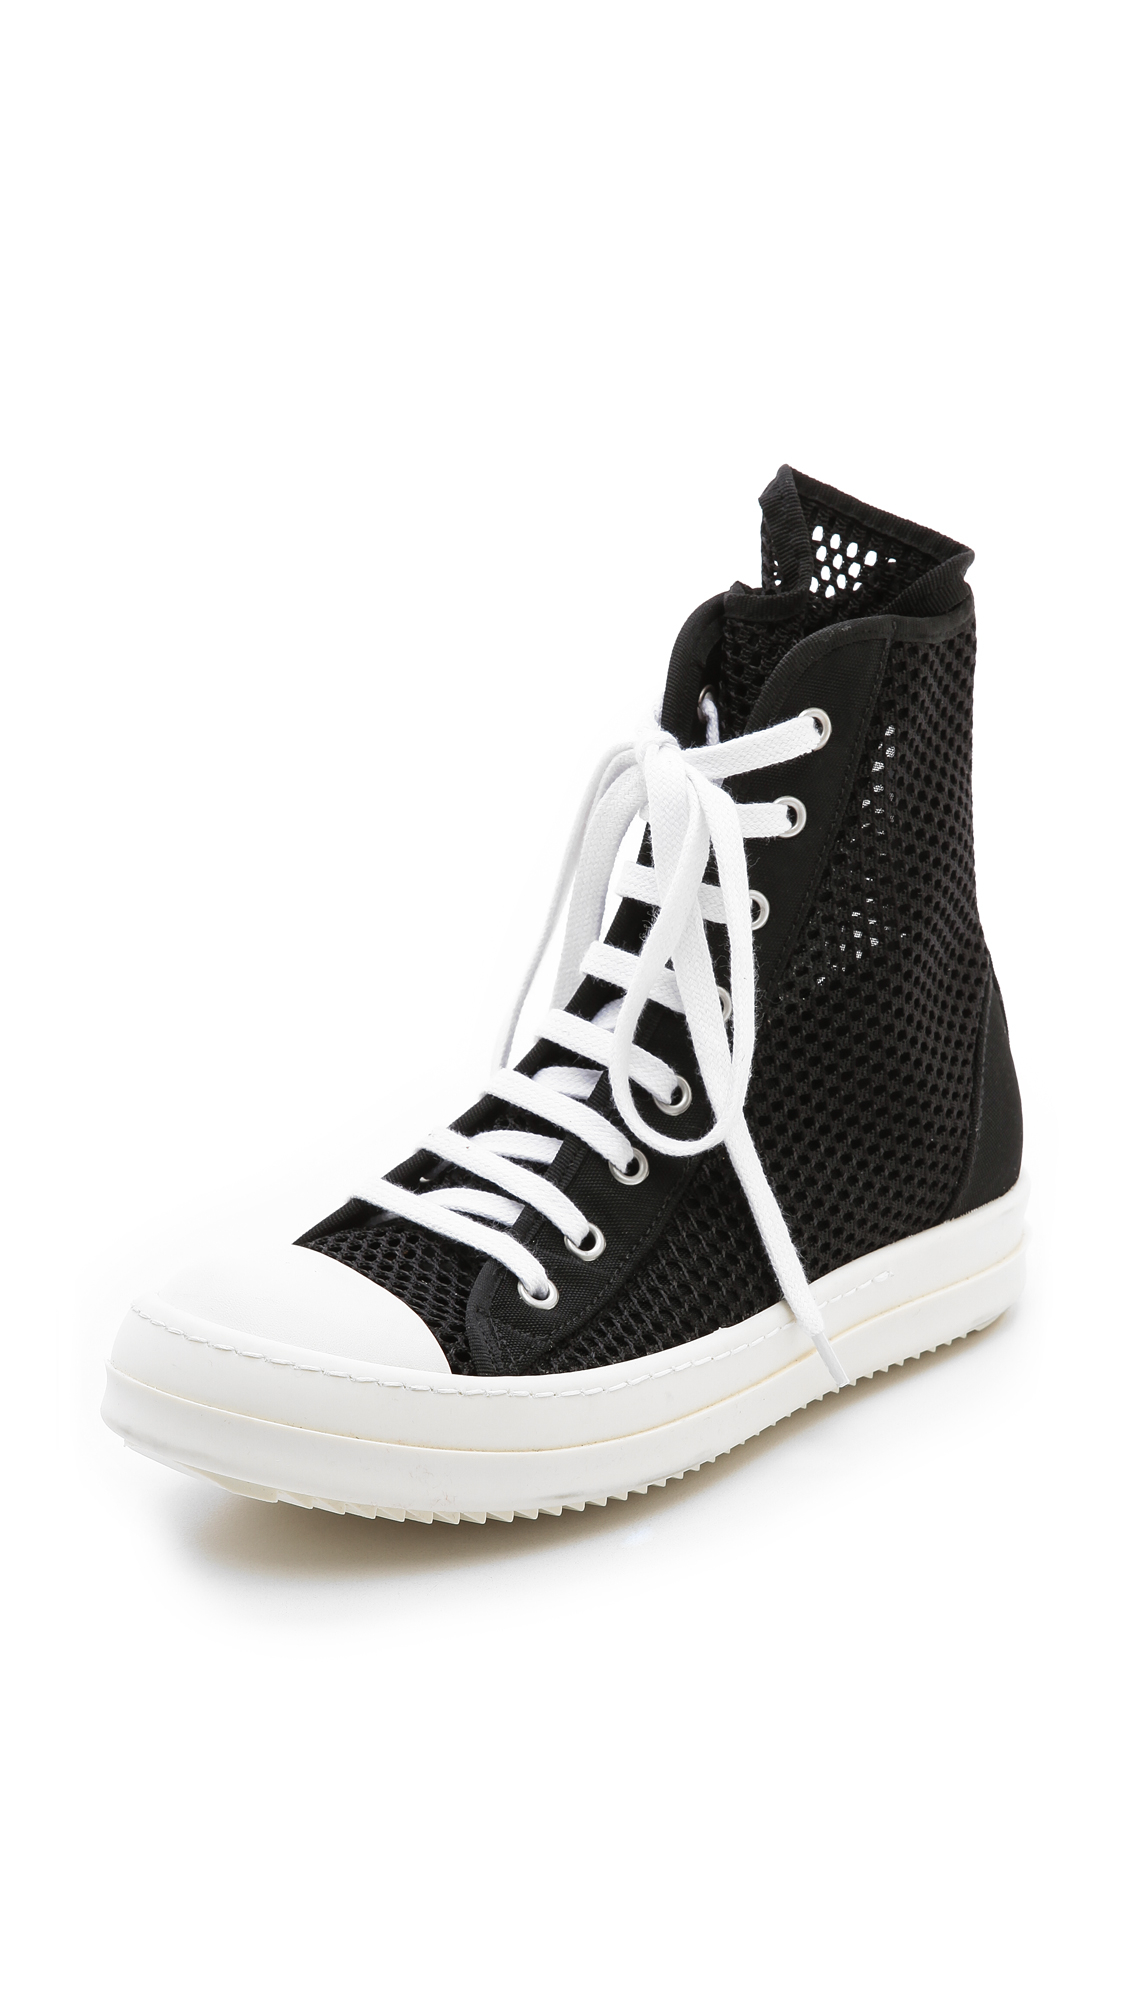 Rick Owen Ramones | Rick Owens Shoes on Sale | Rick Owens Ramones Boots